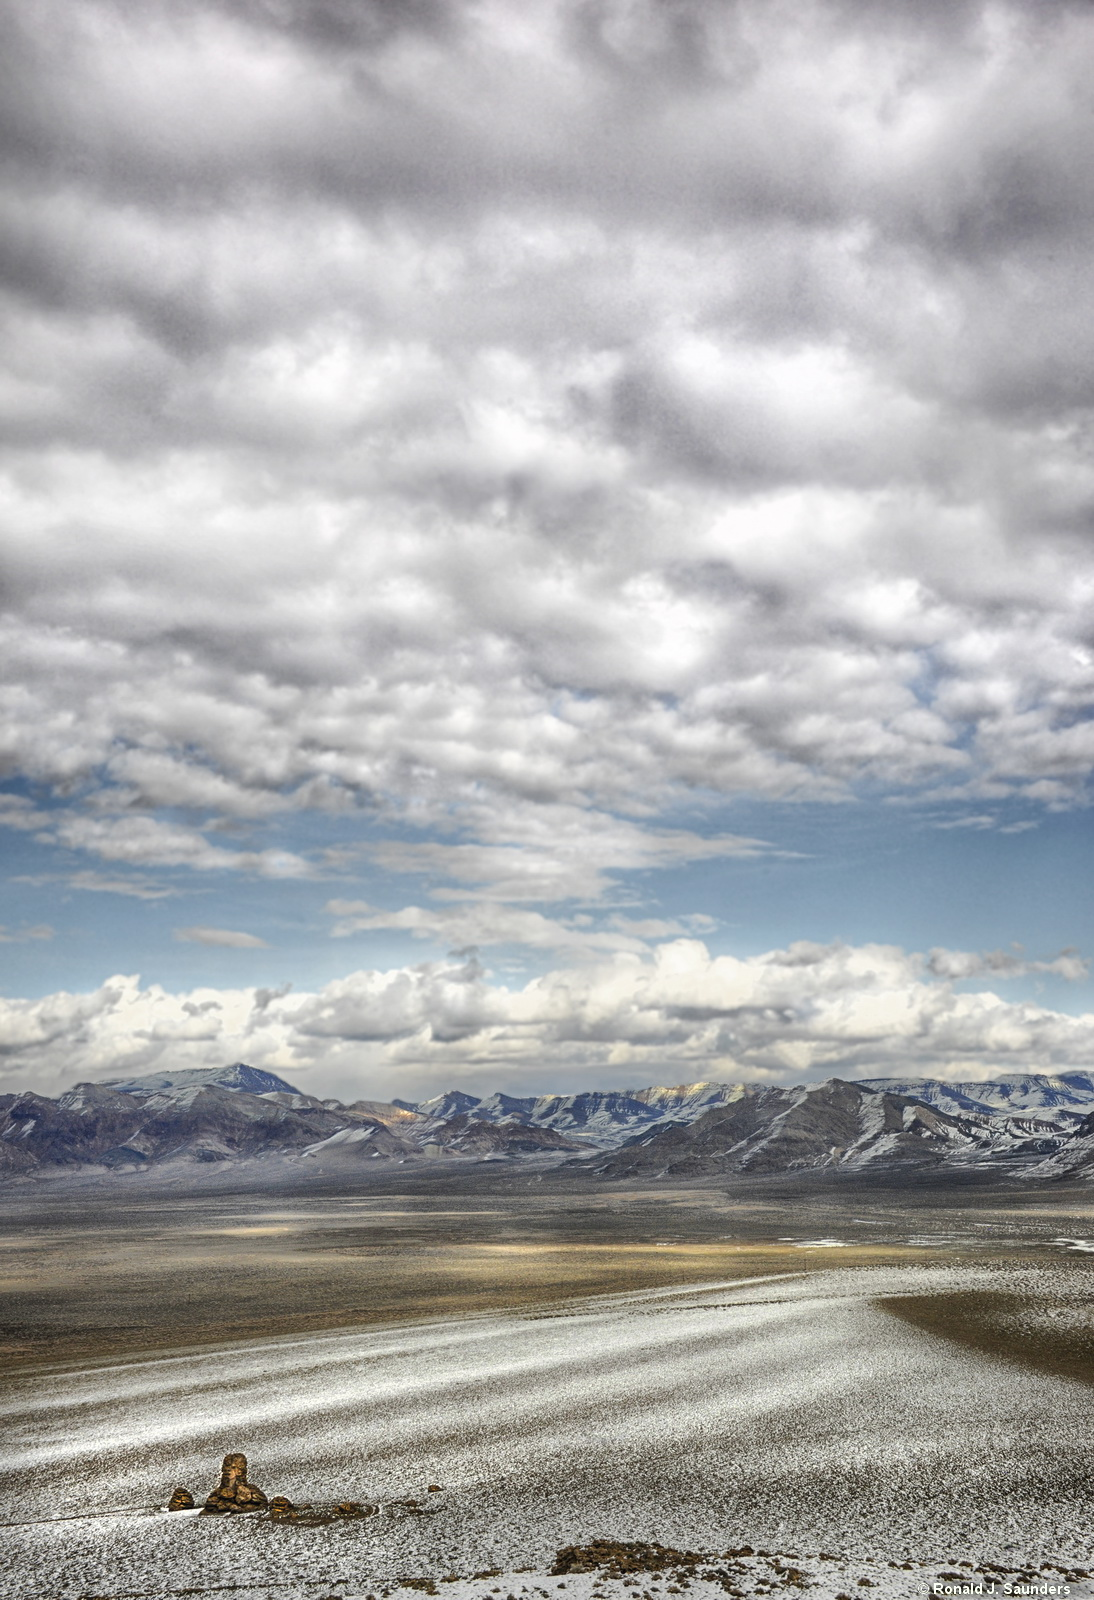 Nevada, Ronald, Saunders, Ron, color, tufa, clouds, mountains, nightingale, lake, dry,  Winnemucca, desert, photography, photo